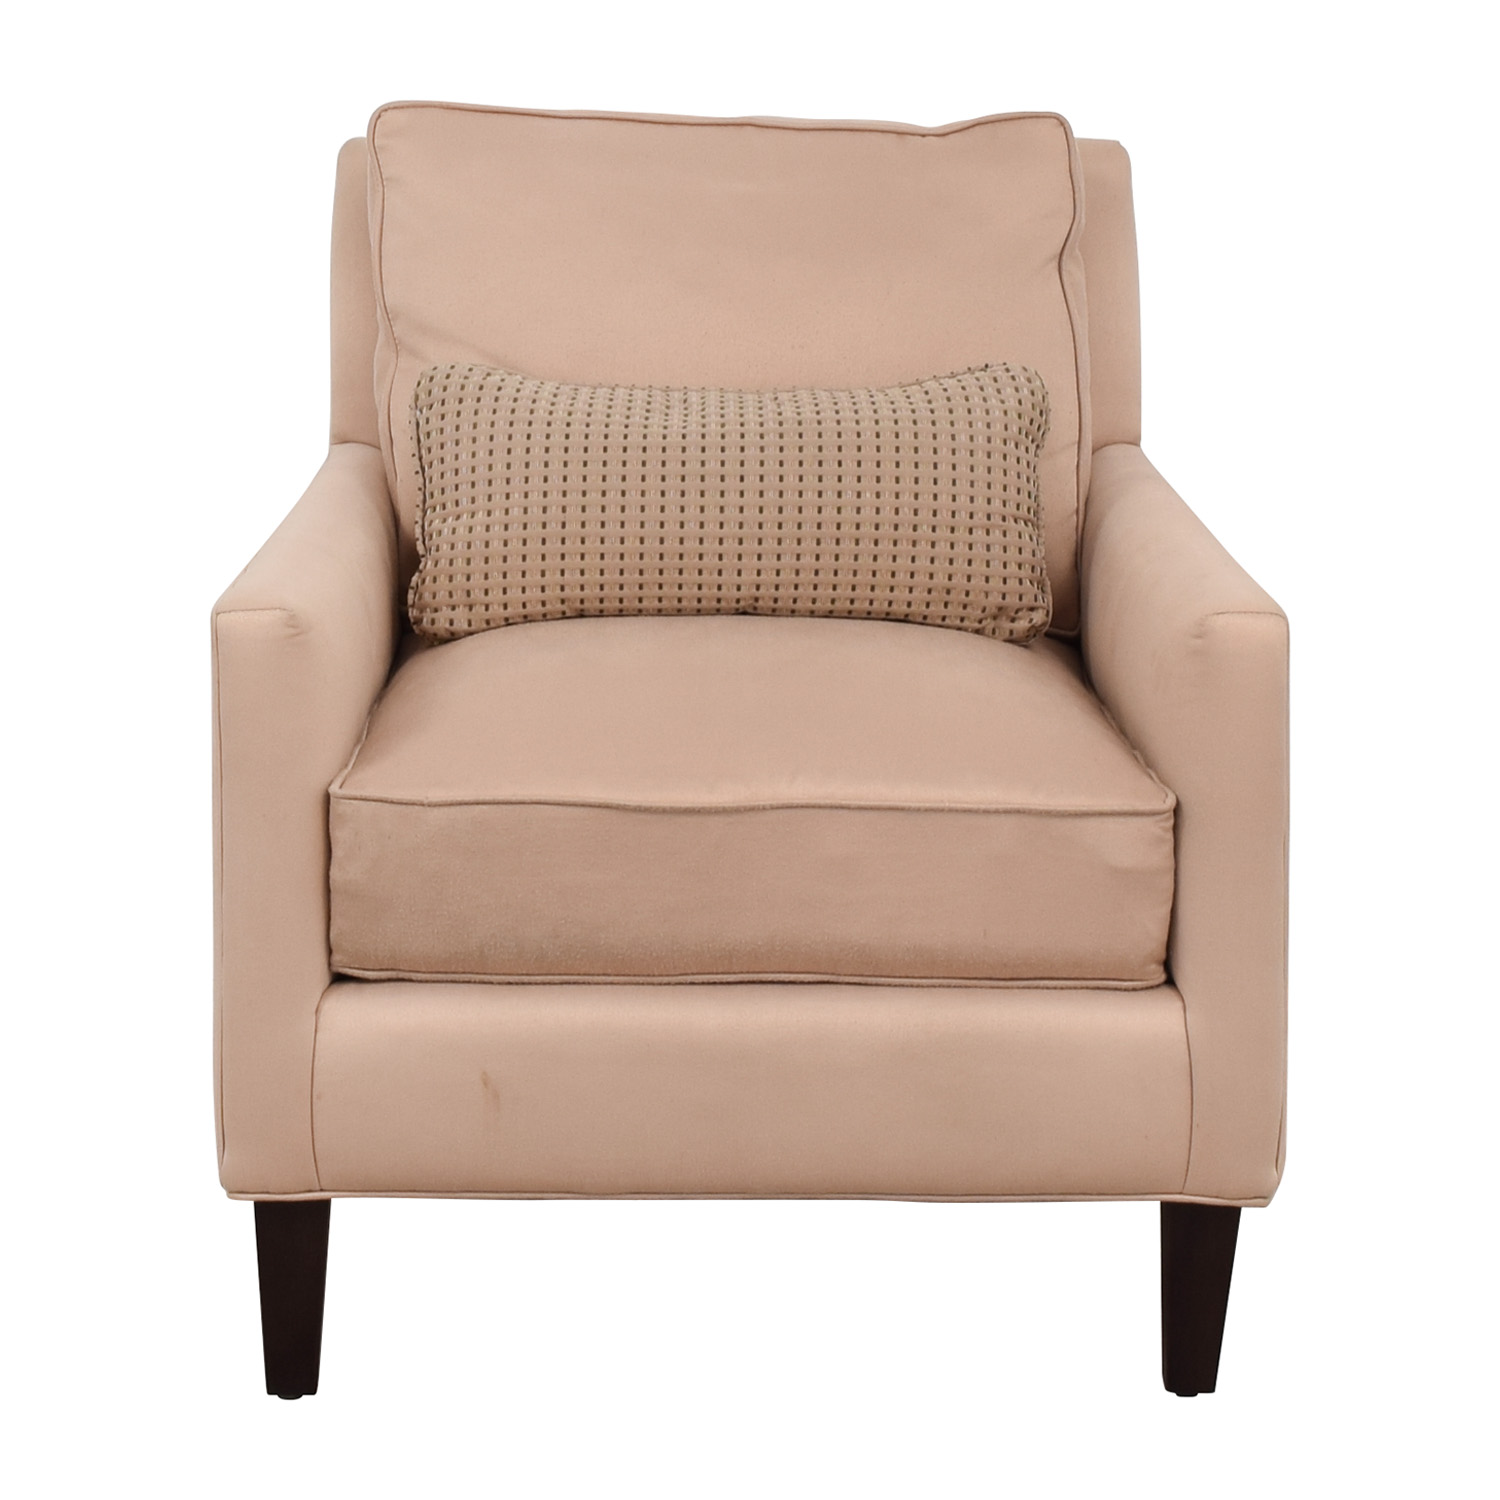 buy Thomasville Thomasville Highlife Accent Chair online